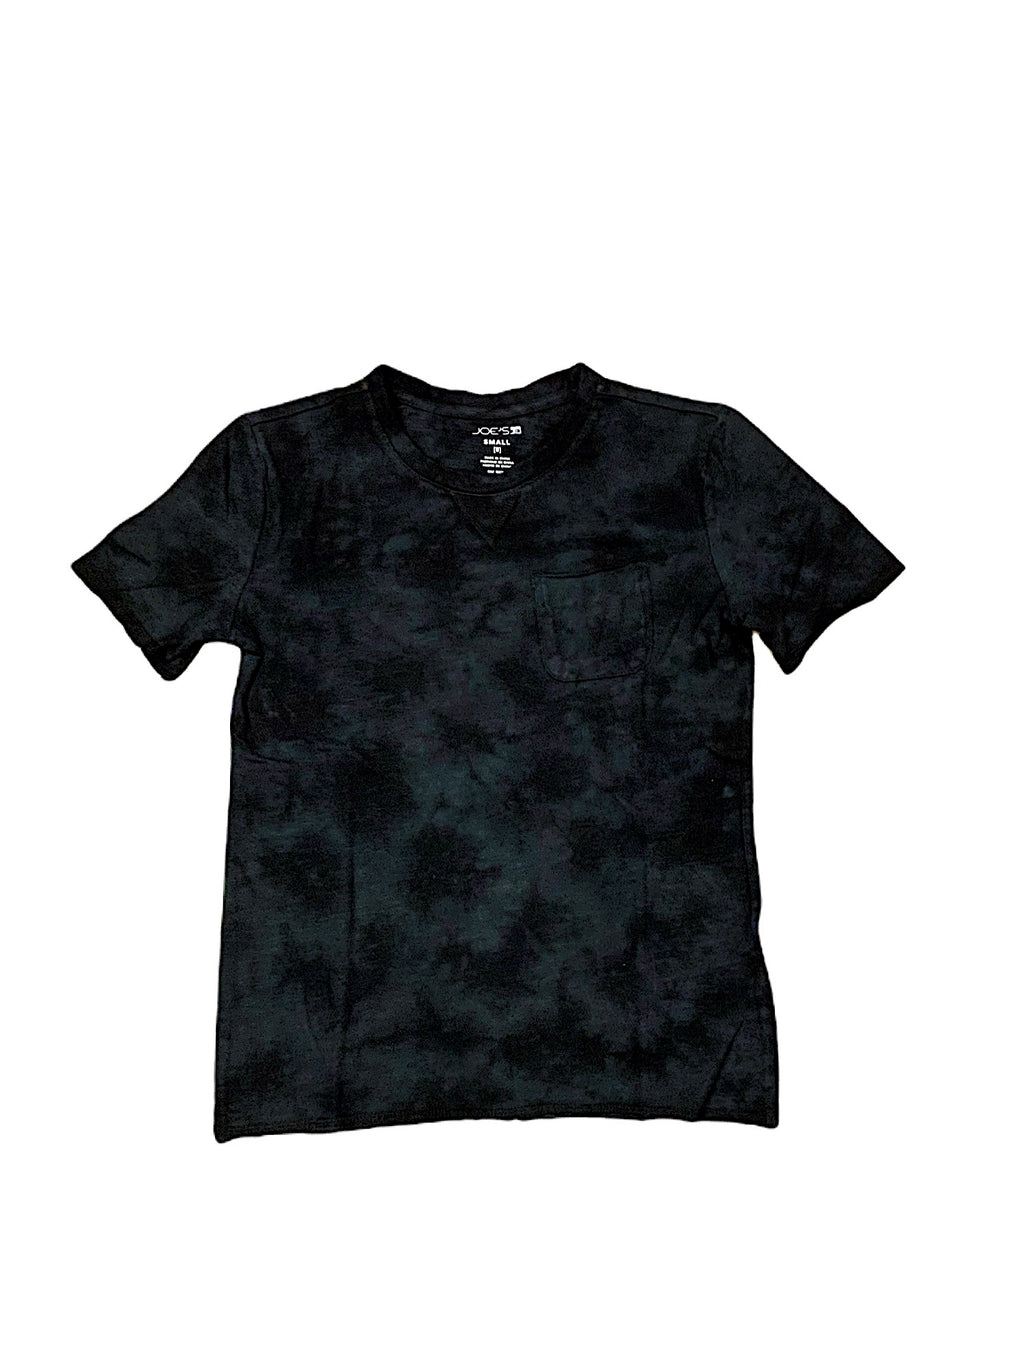 Joe's Jeans Tie Dye Pocket Tee